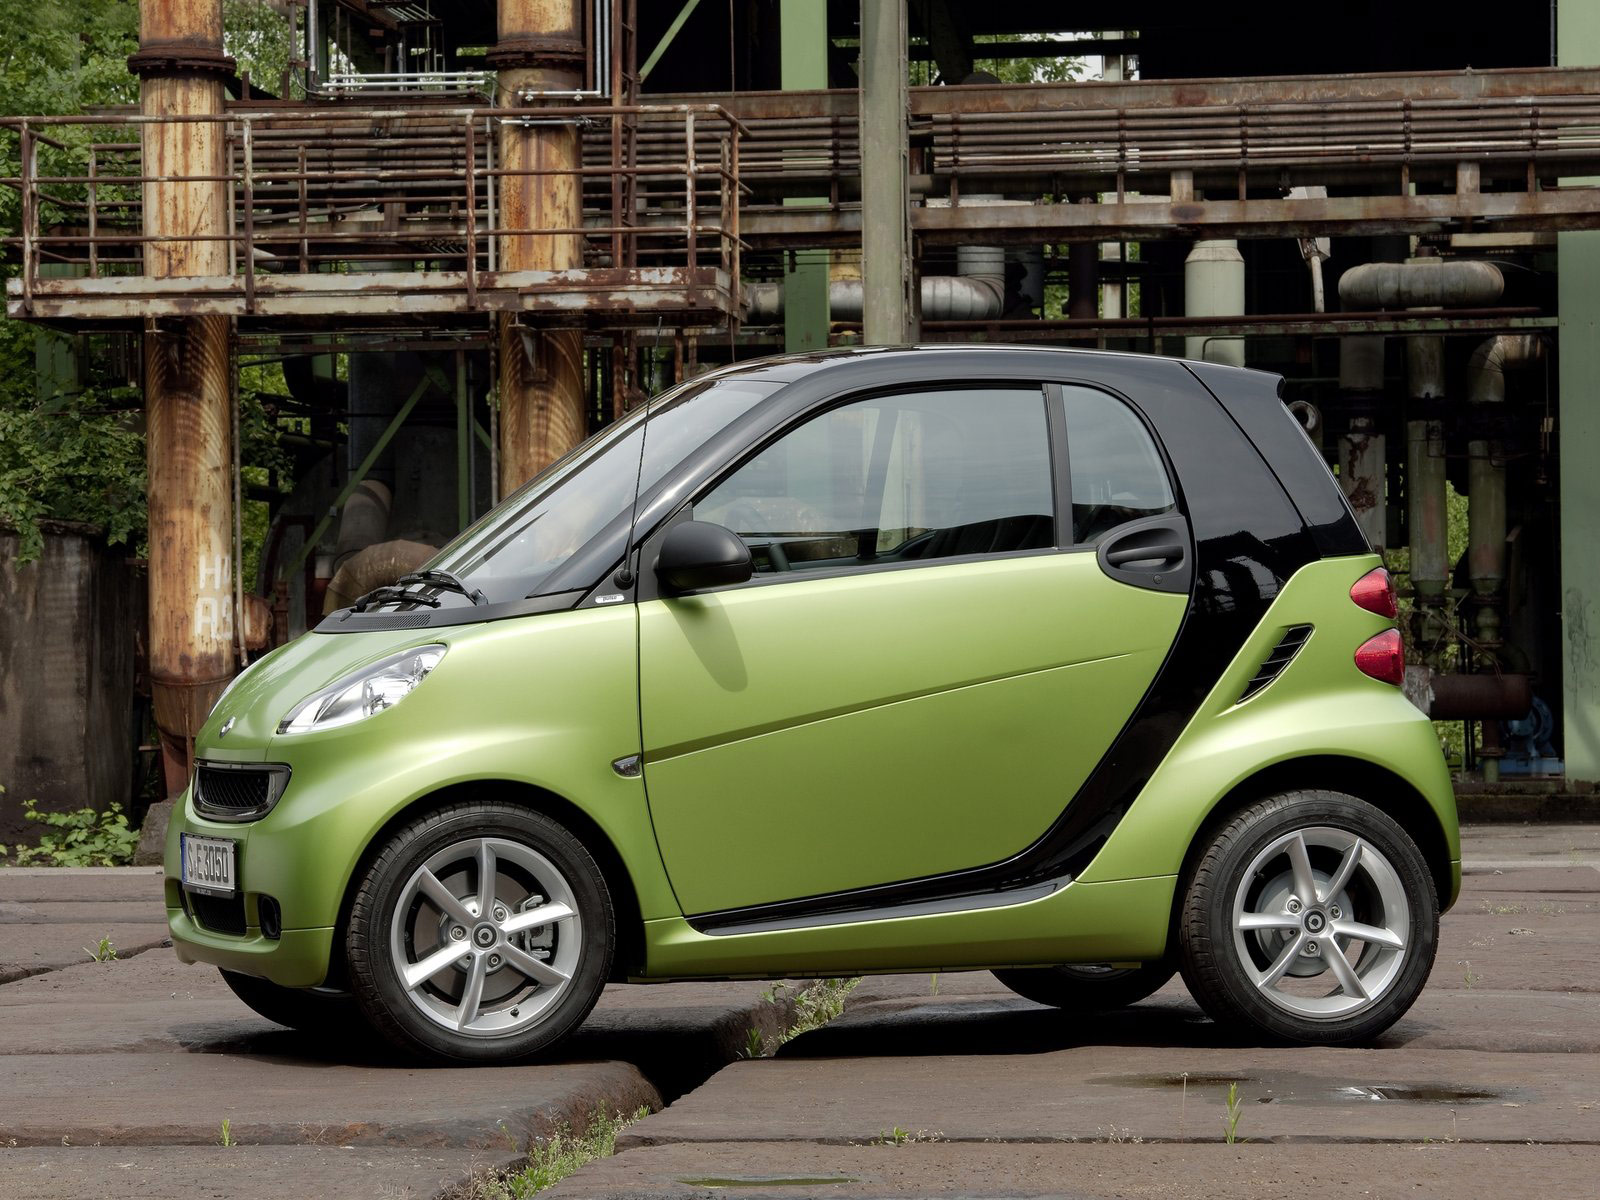 2011 smart fortwo car desktop wallpapers wallpaper desktop cool. Black Bedroom Furniture Sets. Home Design Ideas